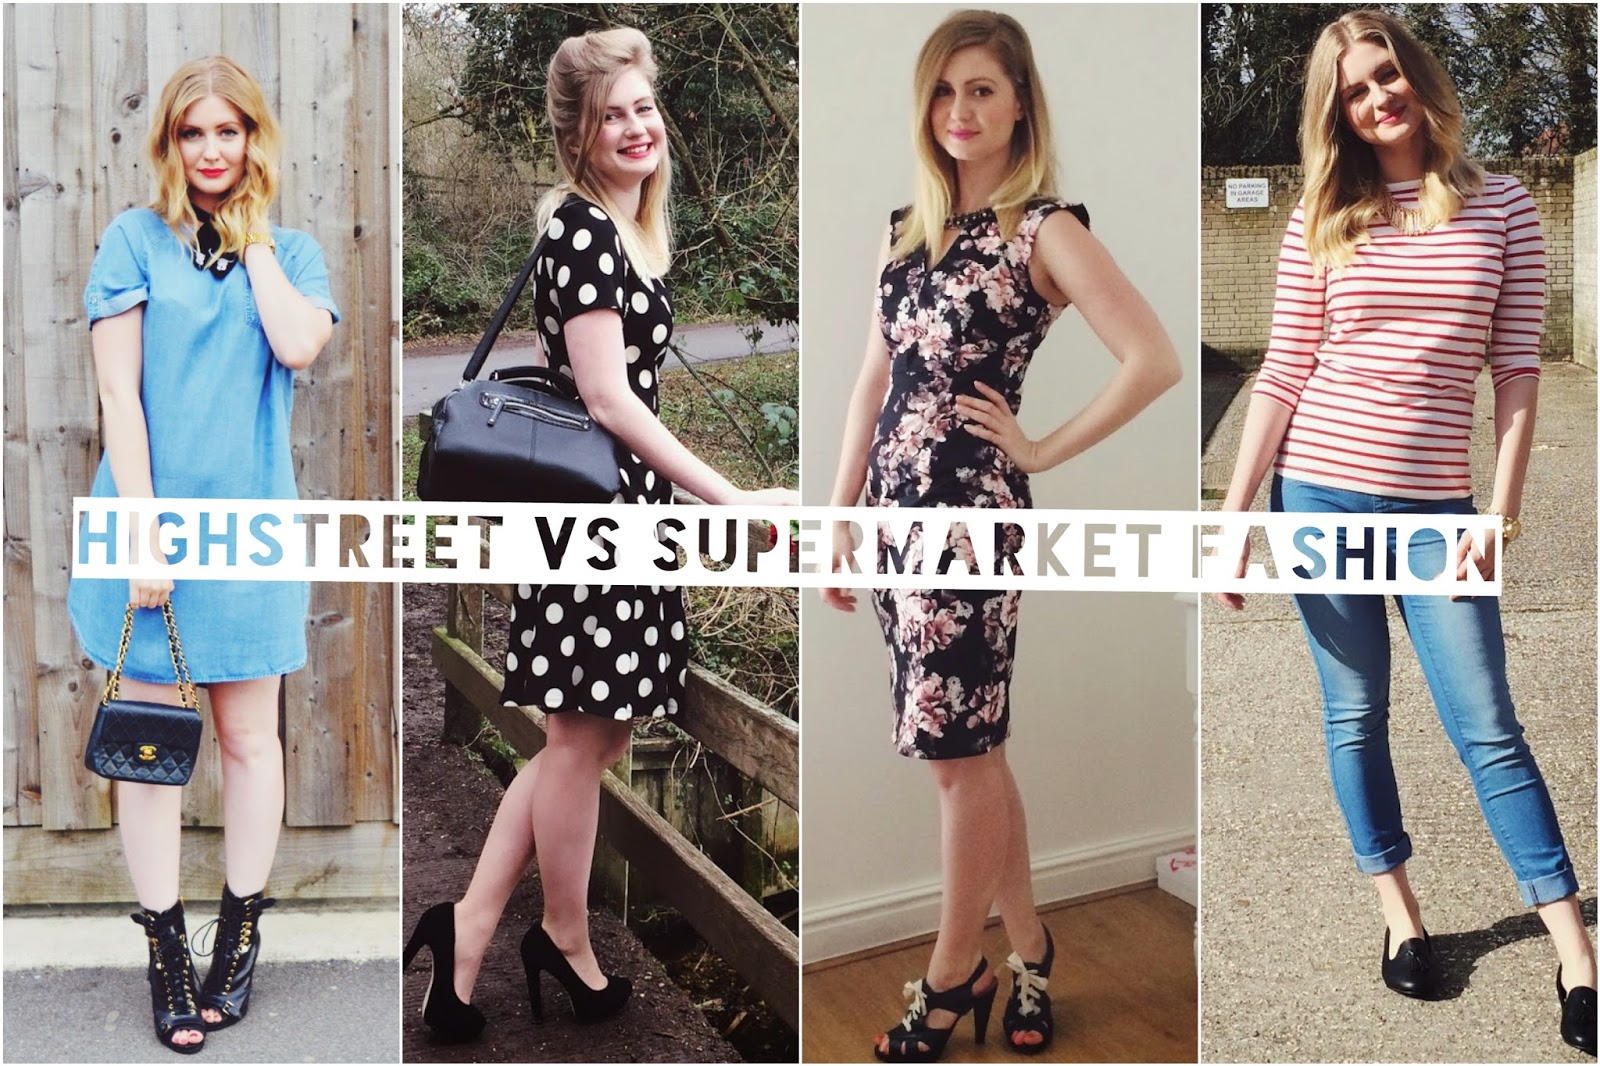 Supermarket fashion brands, FashionFake, fashion bloggers